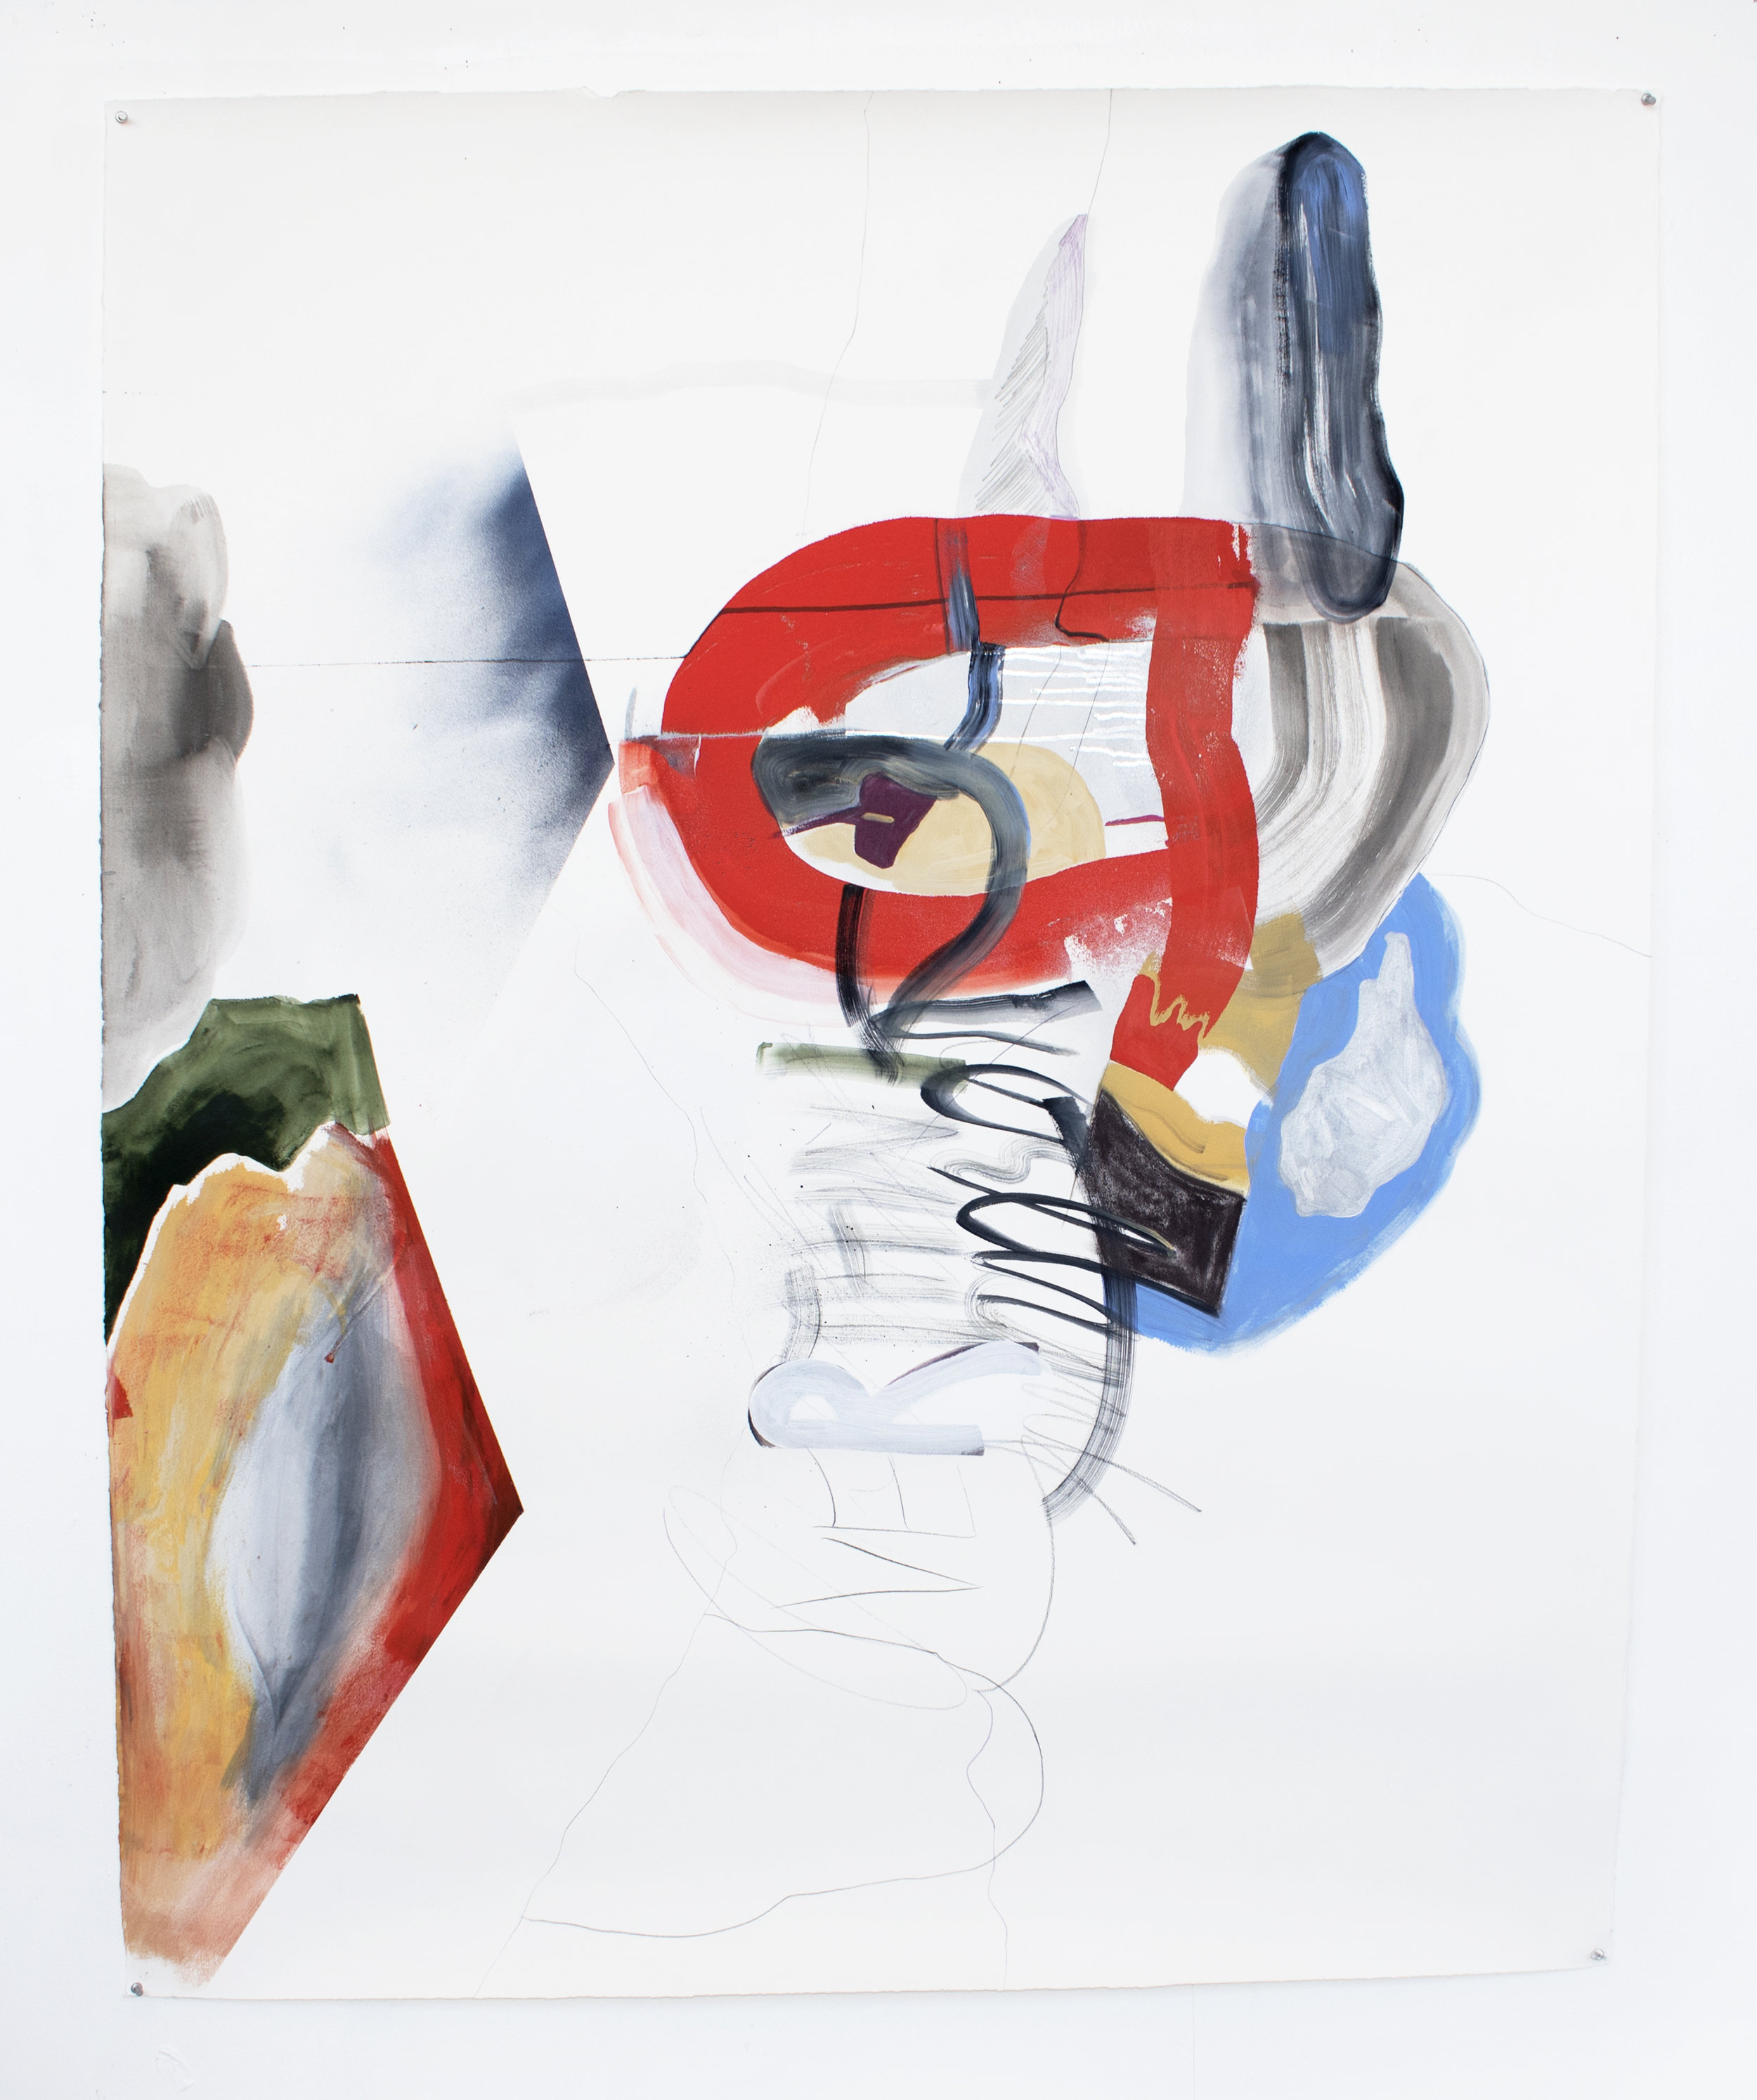 combover , 2017, acrylic, ink, spray paint, and graphite on paper, 51 x 63.5 inches